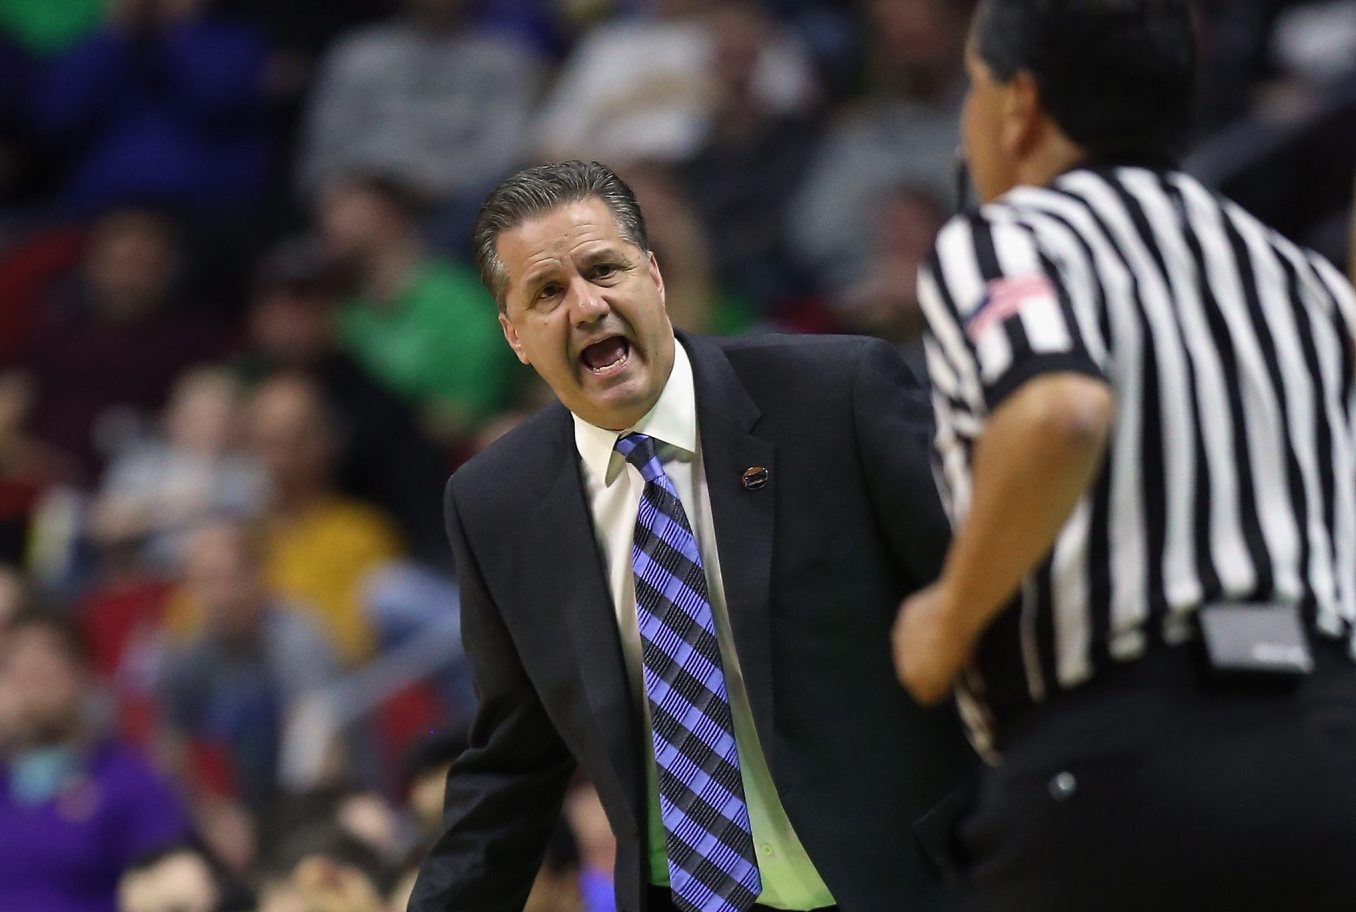 Kentucky Wildcats head coach John Calipari reacts while playing the Stony Brook Seawolves in the first half during the first round of the 2016 NCAA Men's Basketball Tournament at Wells Fargo Arena on March 17, 2016, in Des Moines, Iowa.